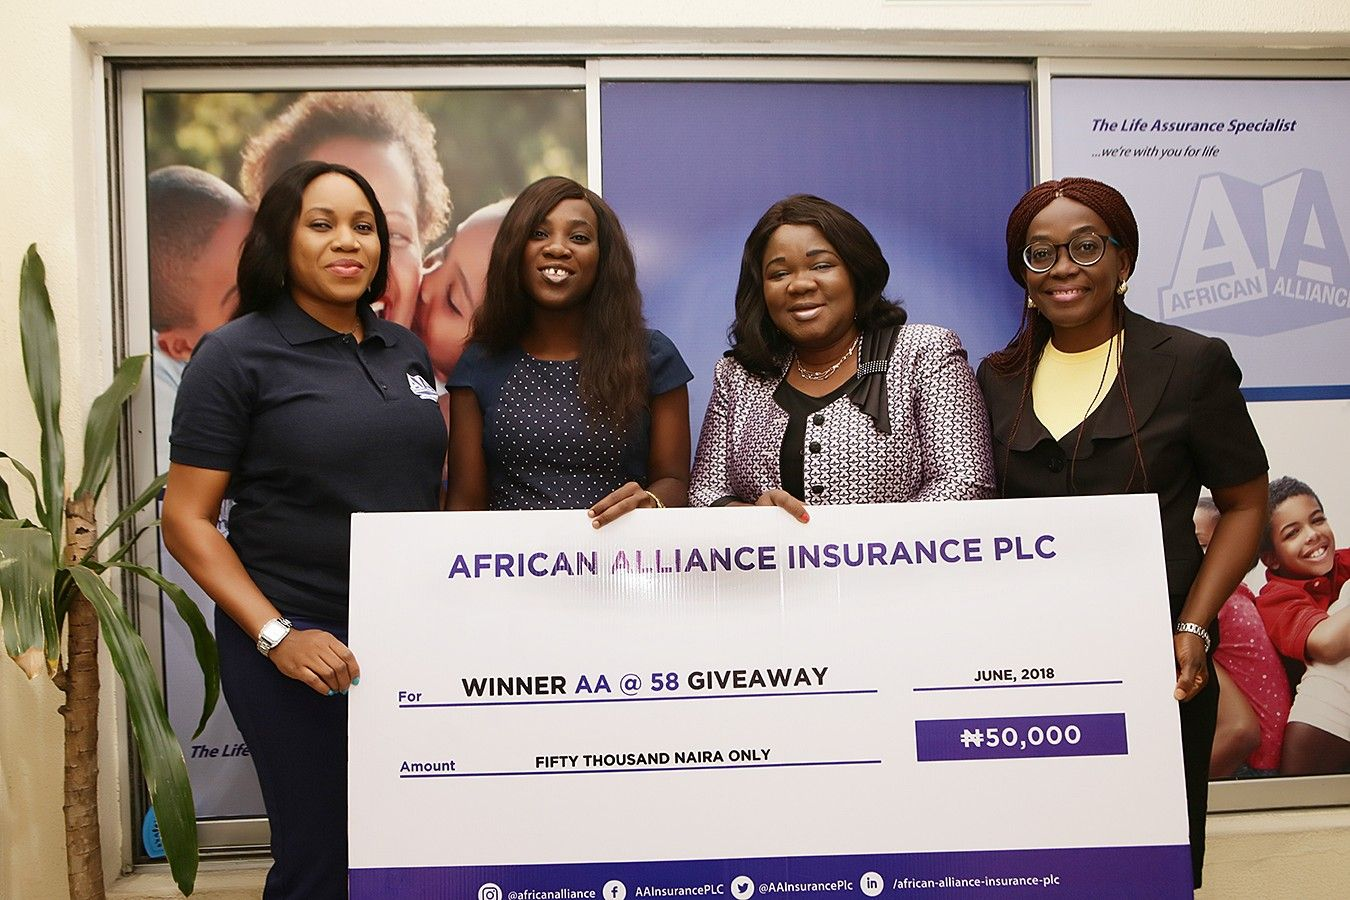 Entrepreneur wins big as foremost life insurance company